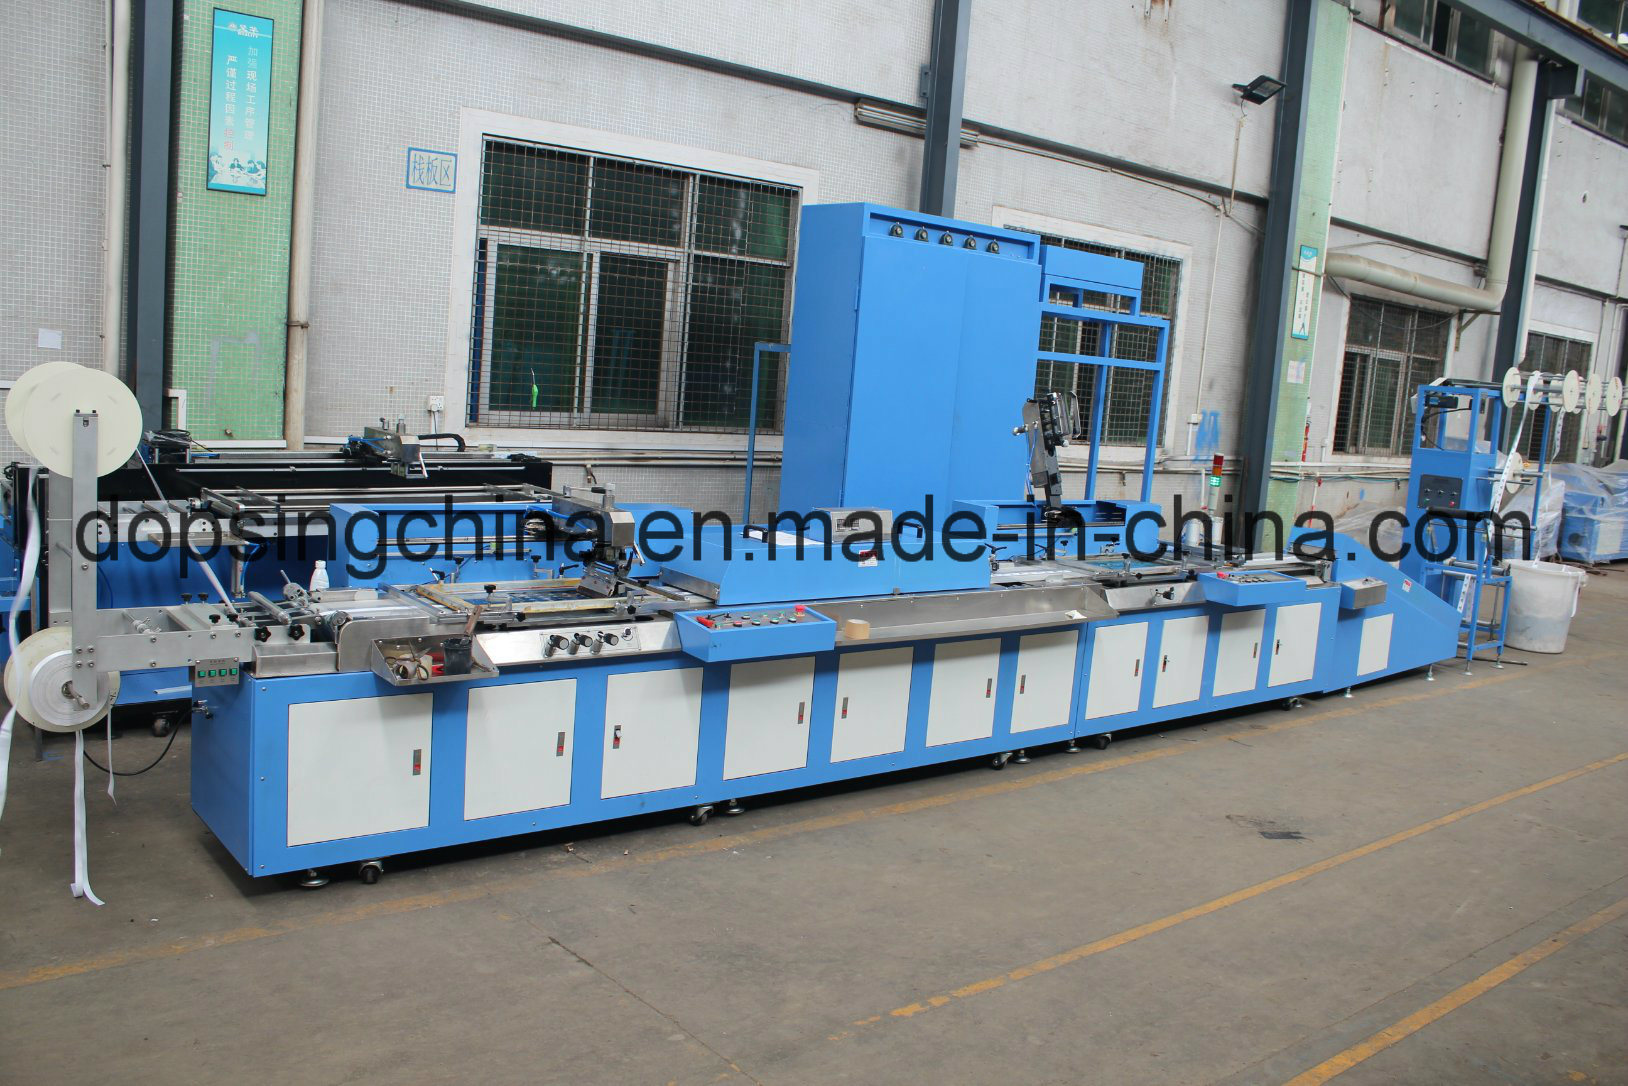 China Supplier Ribbons Continuous Dyeing Machine -